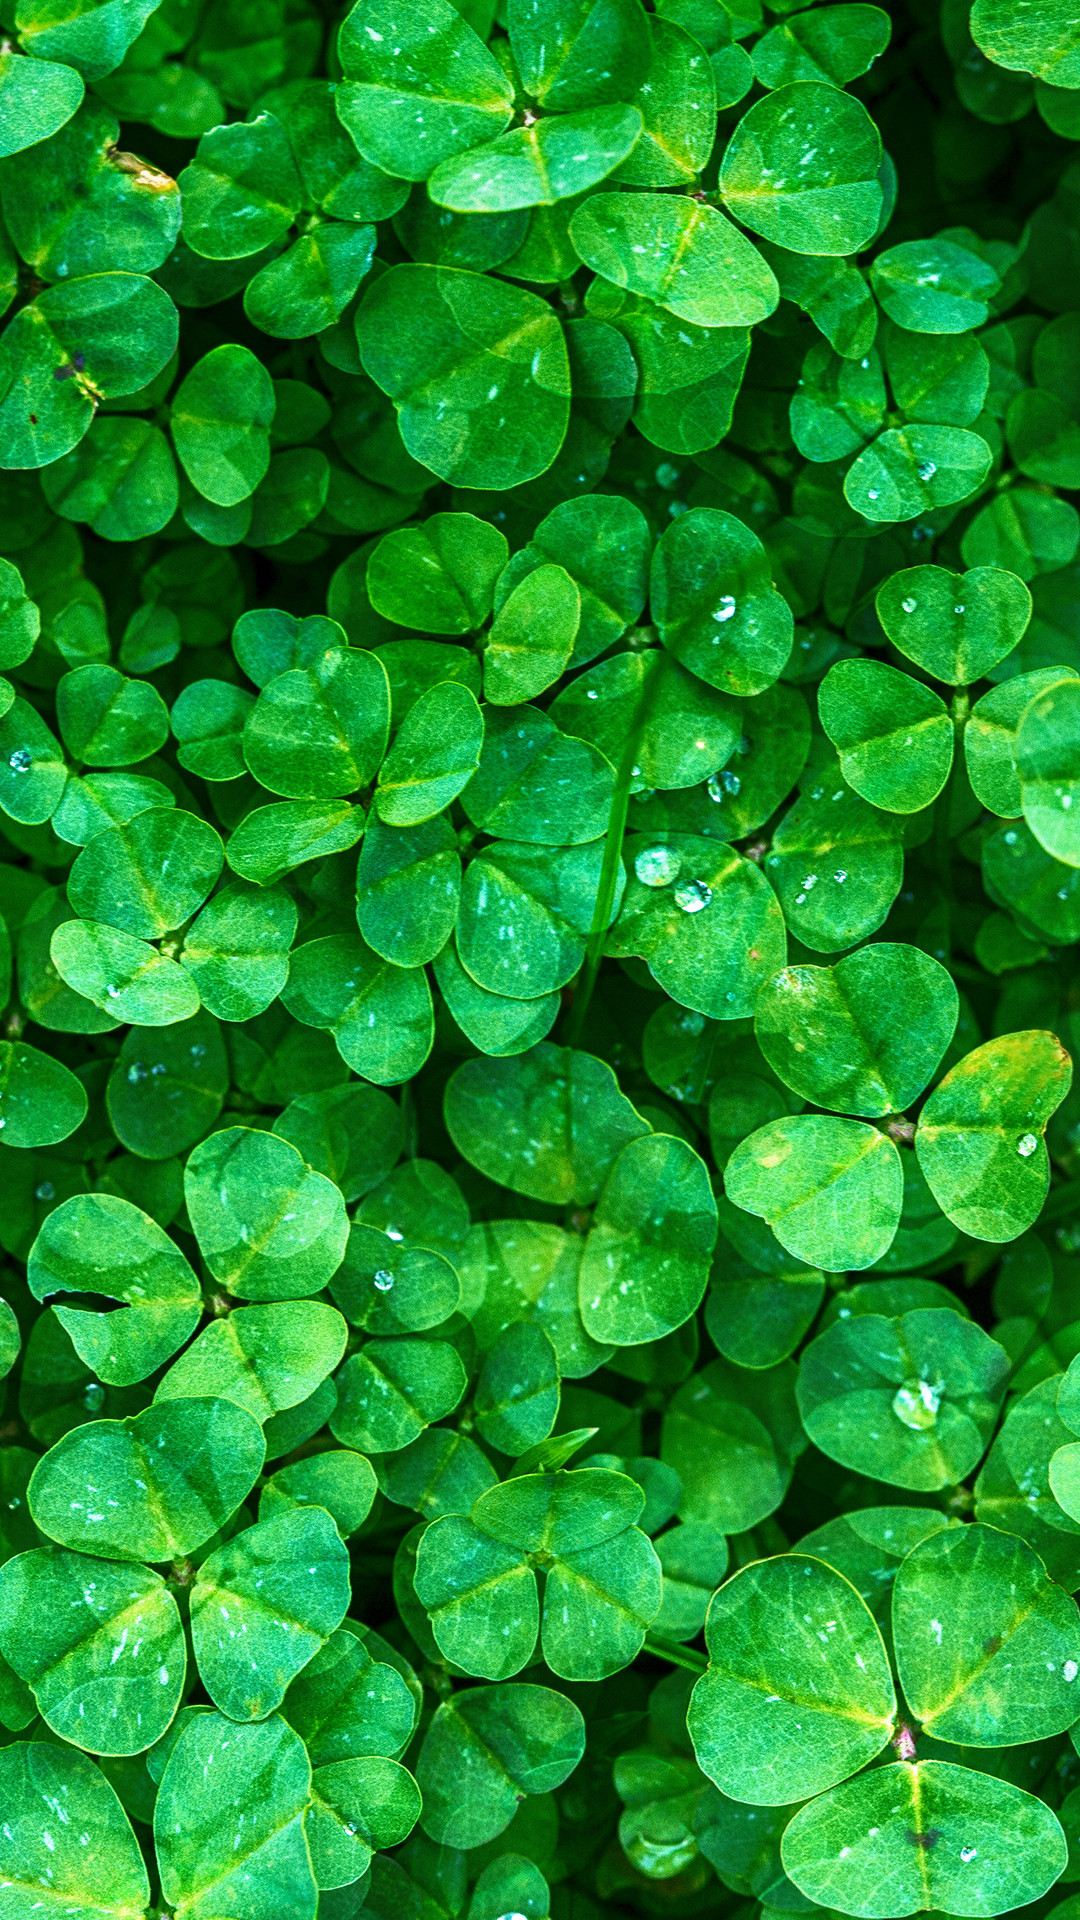 Taylor Swift Hd Wallpapers Download Shamrock Wallpaper 56 Pictures